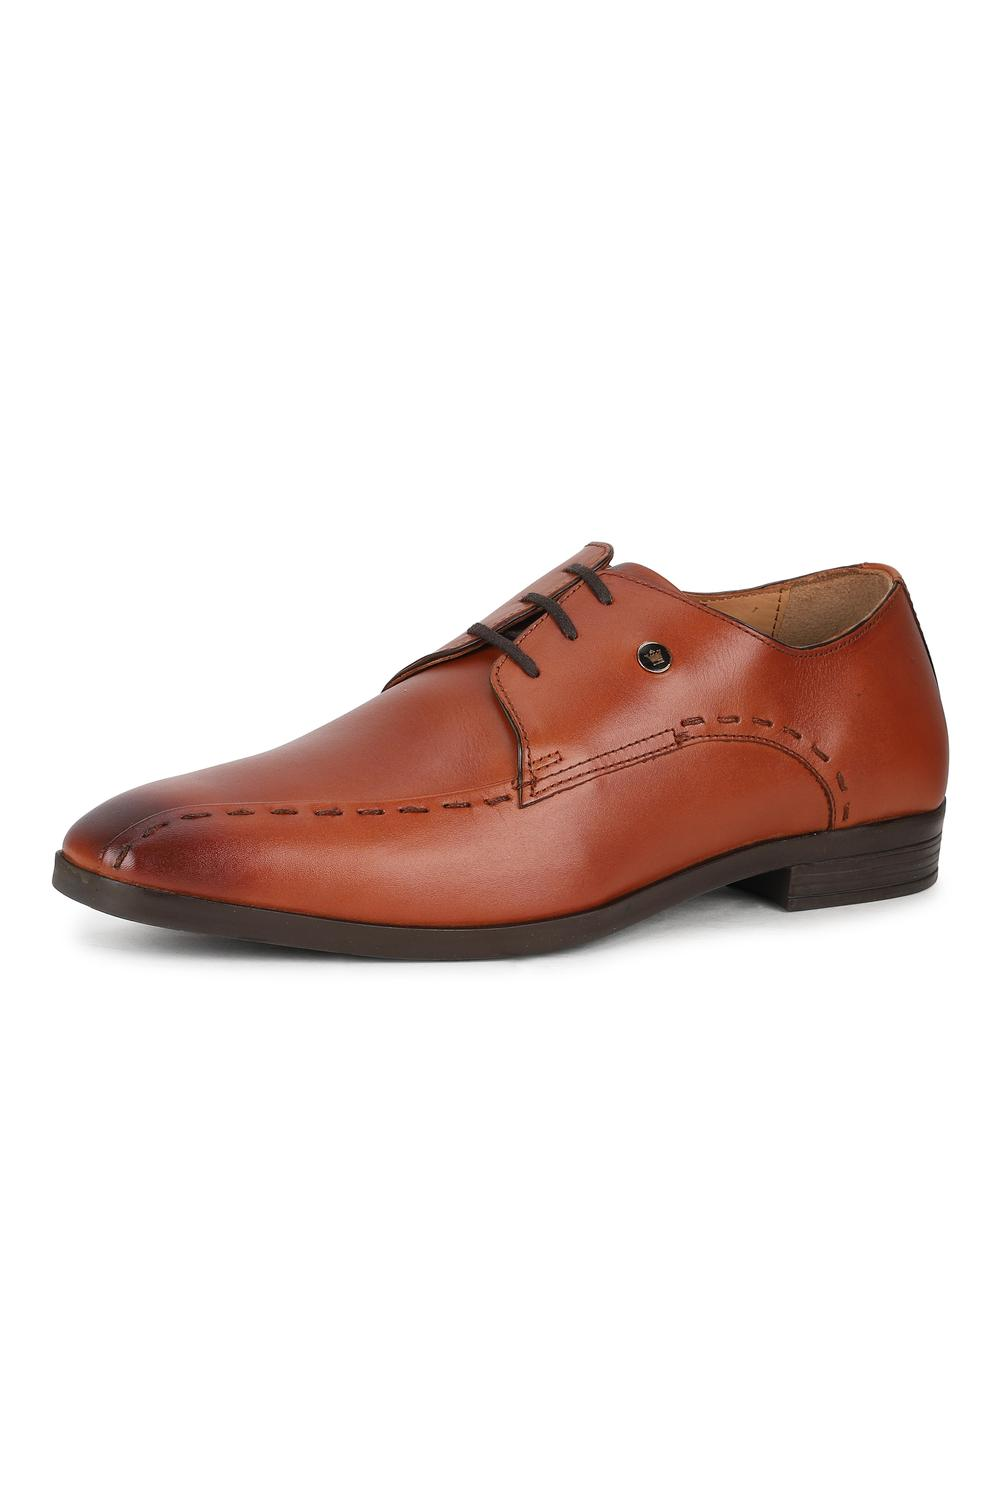 Louis Philippe Brown Lace Up Shoes